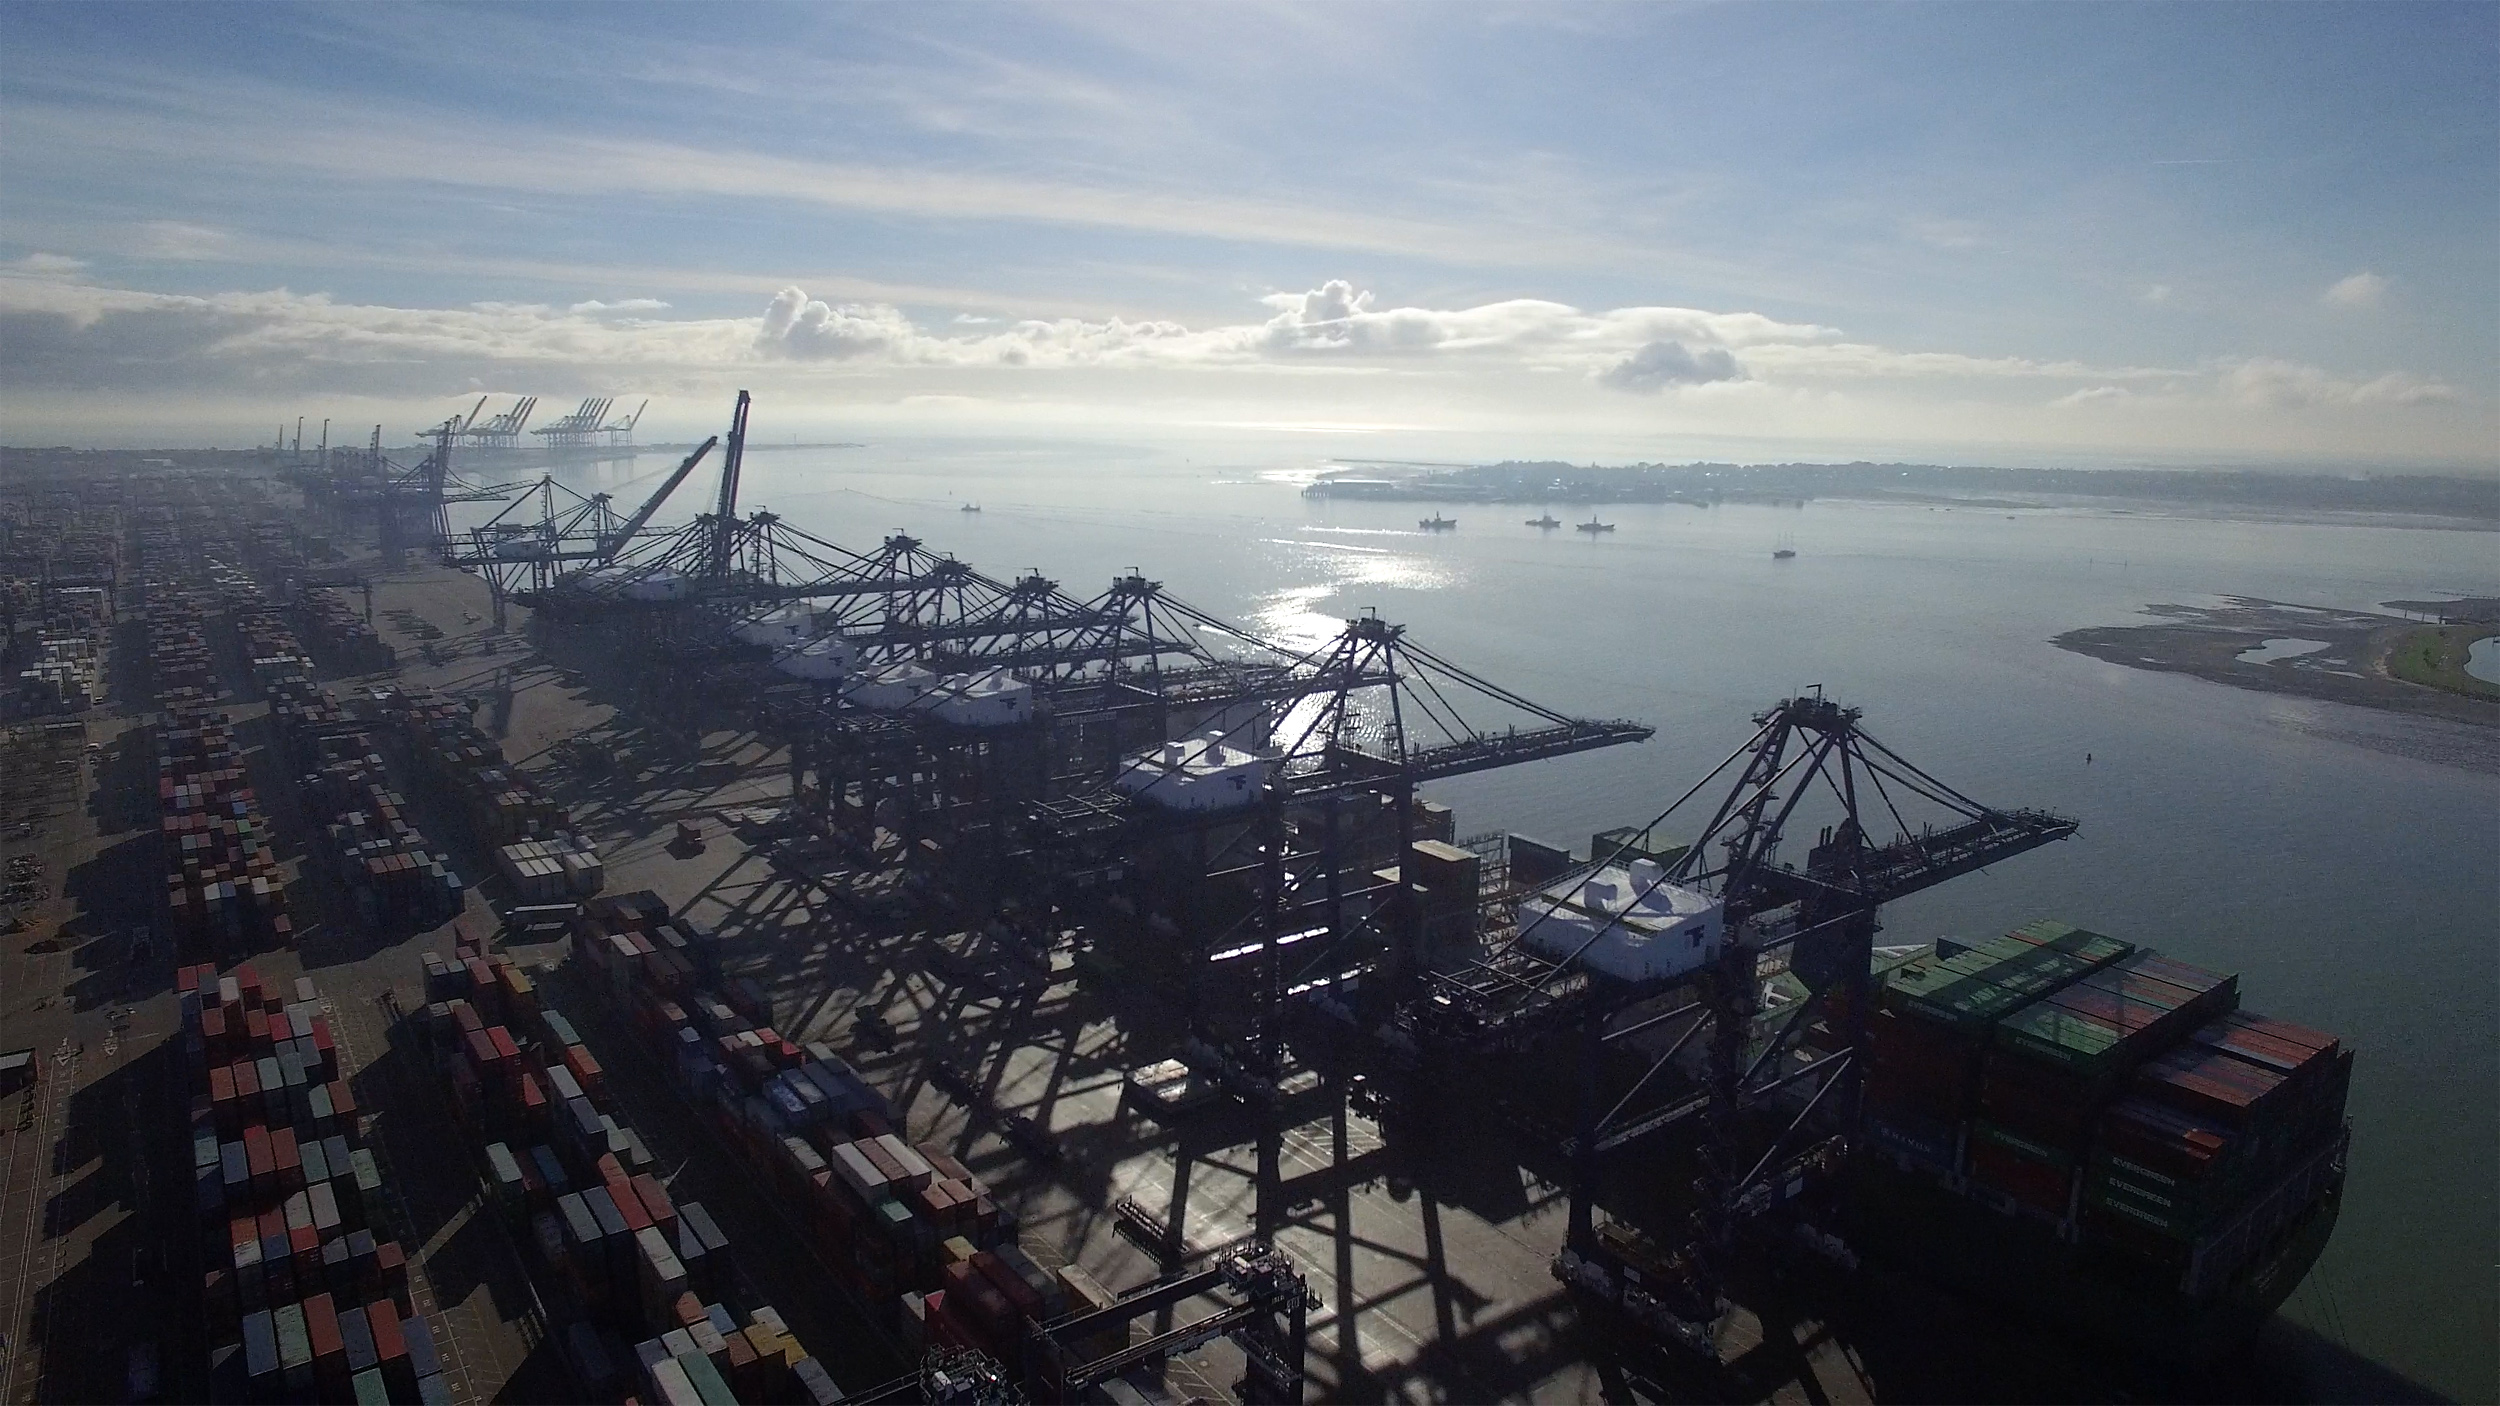 Aerial photo of Felixstowe container port, shot from a drone